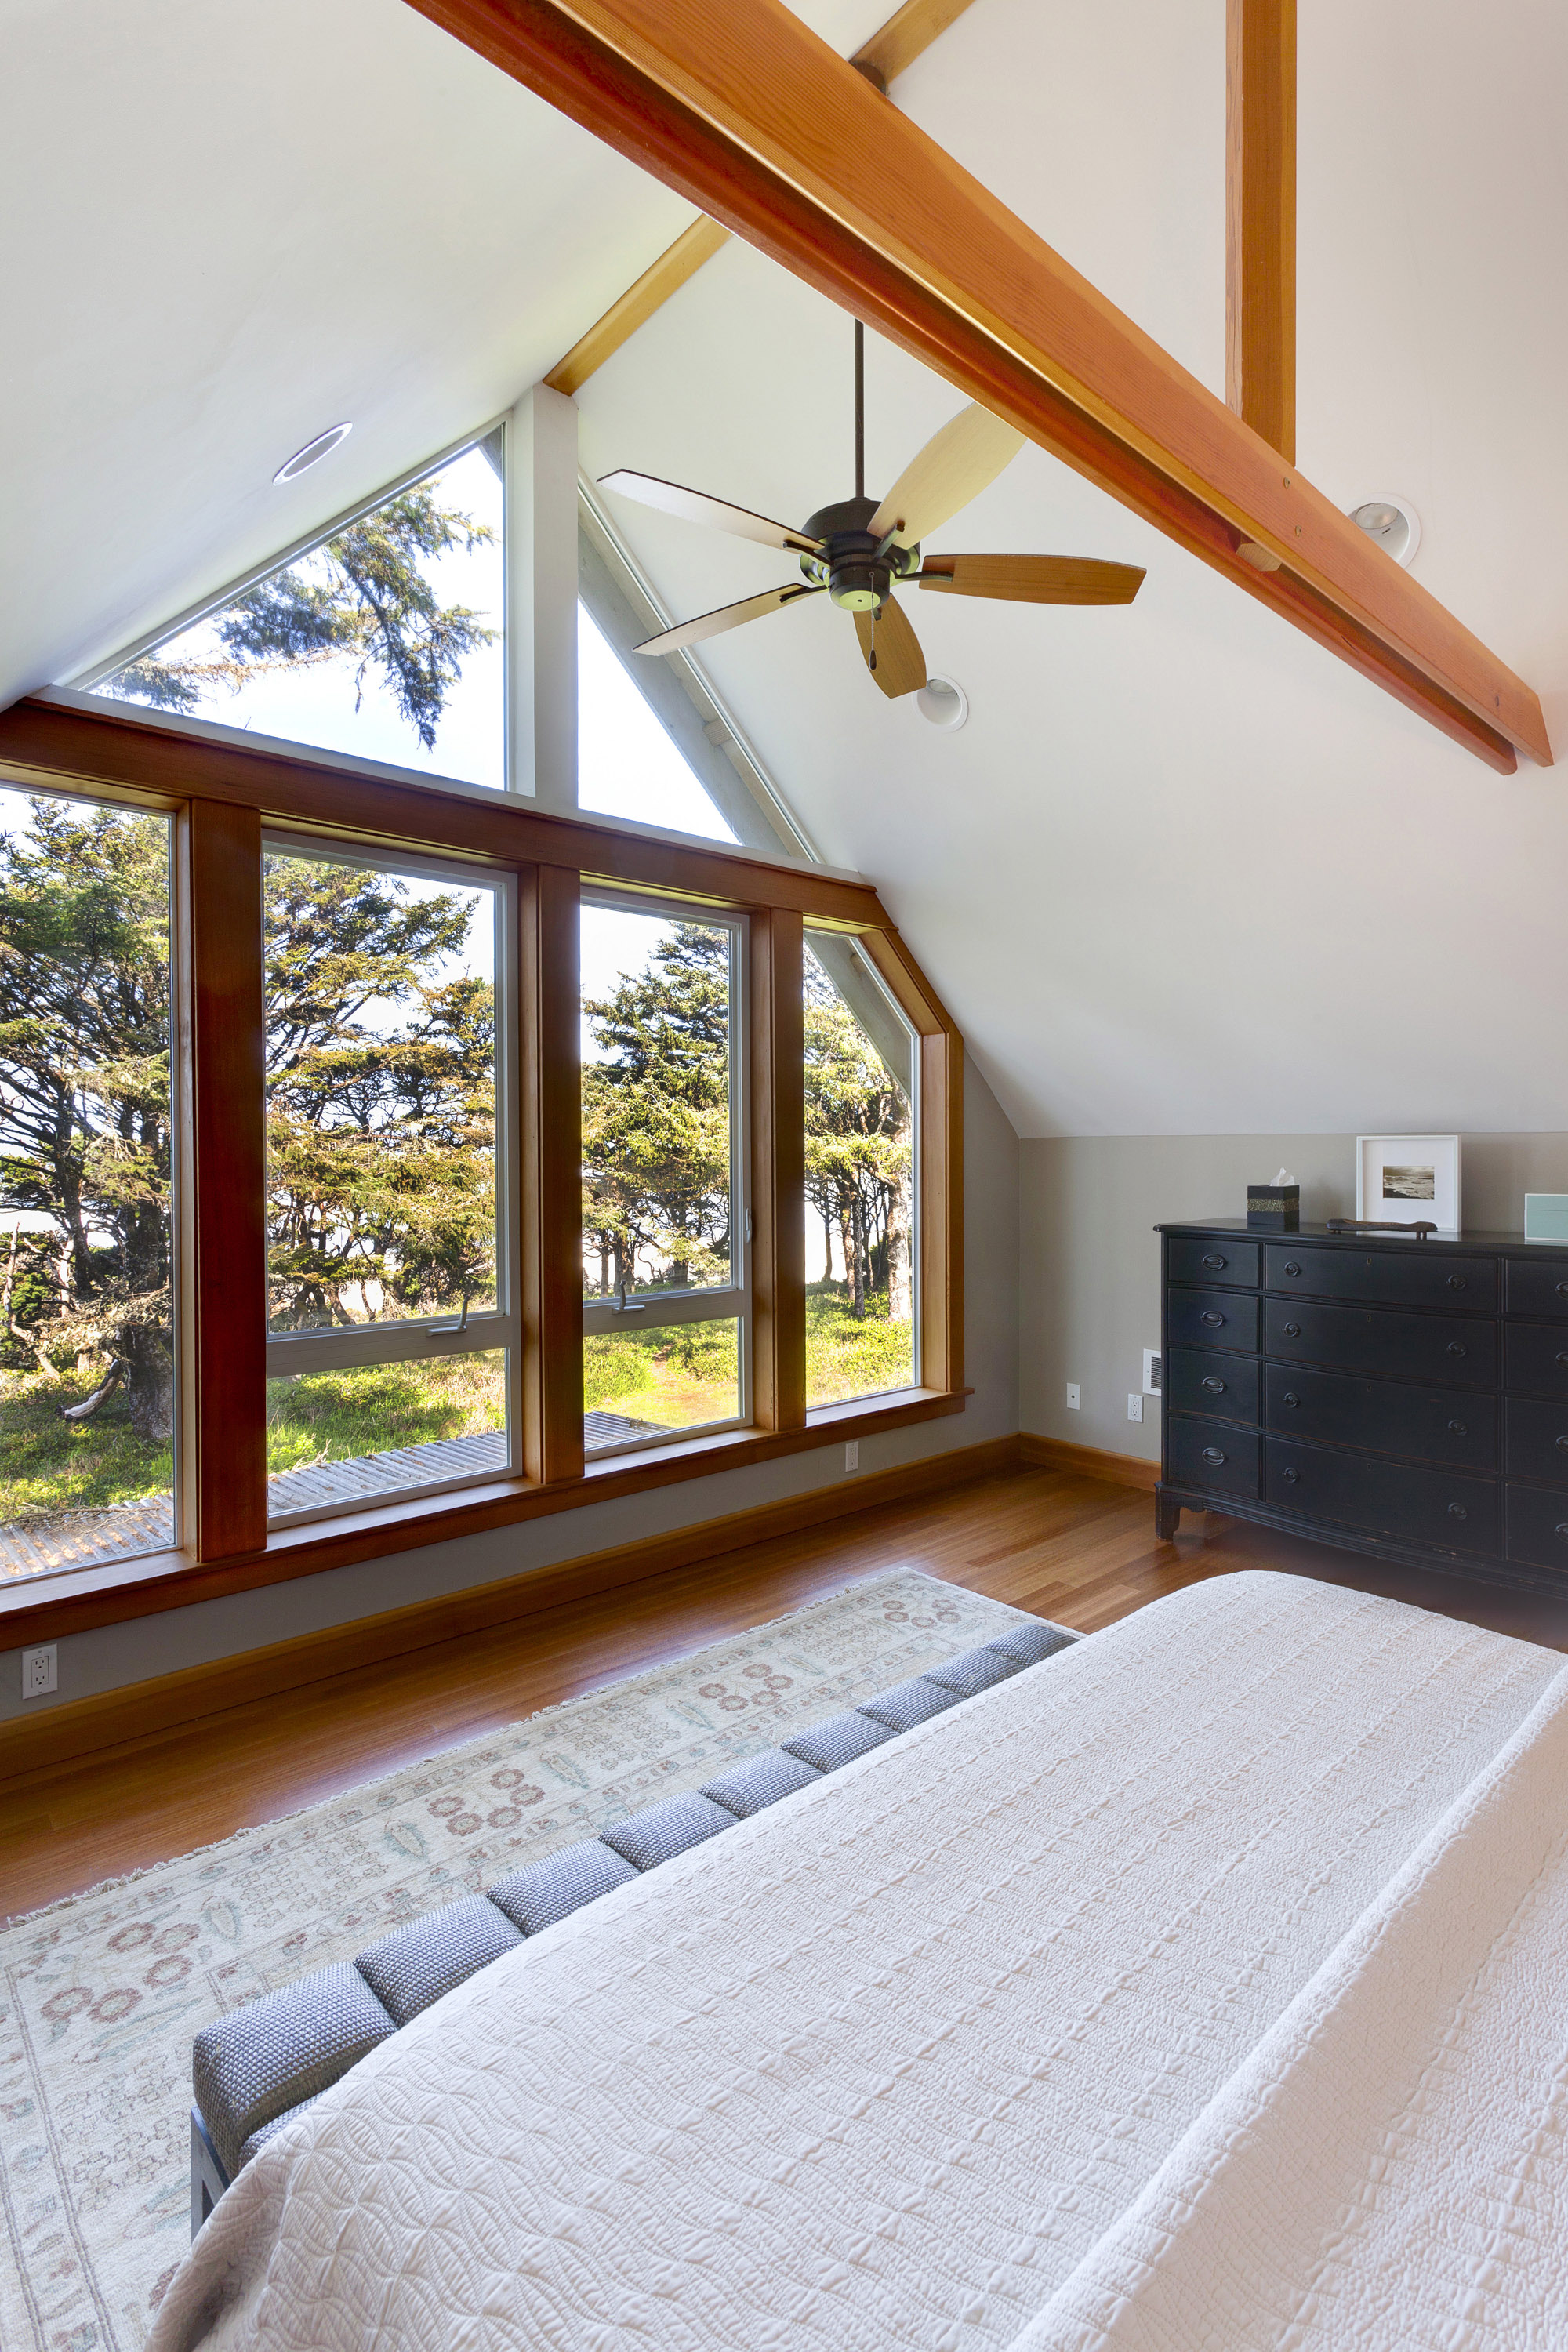 Large King bed room with vaulted ceiling